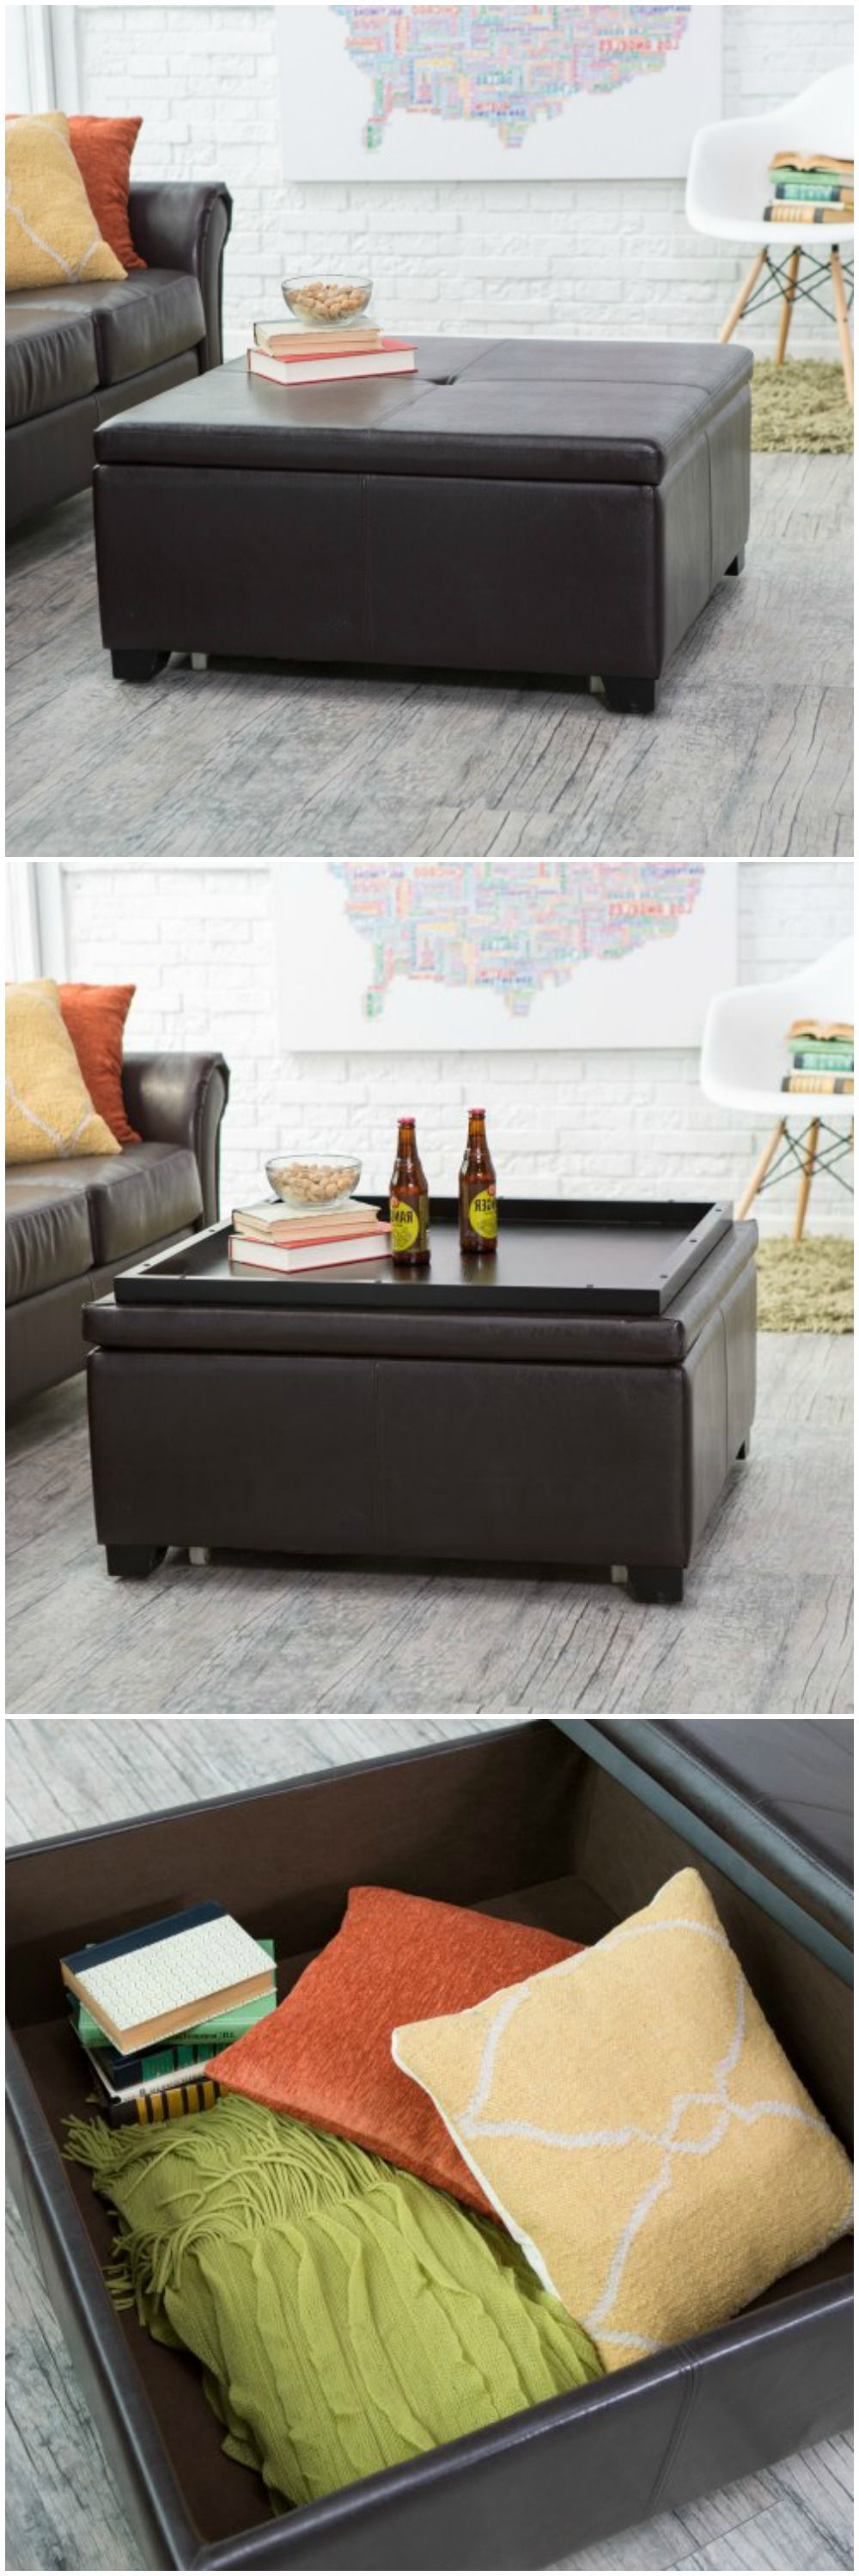 Most Recent Rarick 5 Piece Solid Wood Dining Sets (Set Of 5) Regarding This Ottoman Can Be Used For Storage And As A Coffee Table When (View 8 of 25)